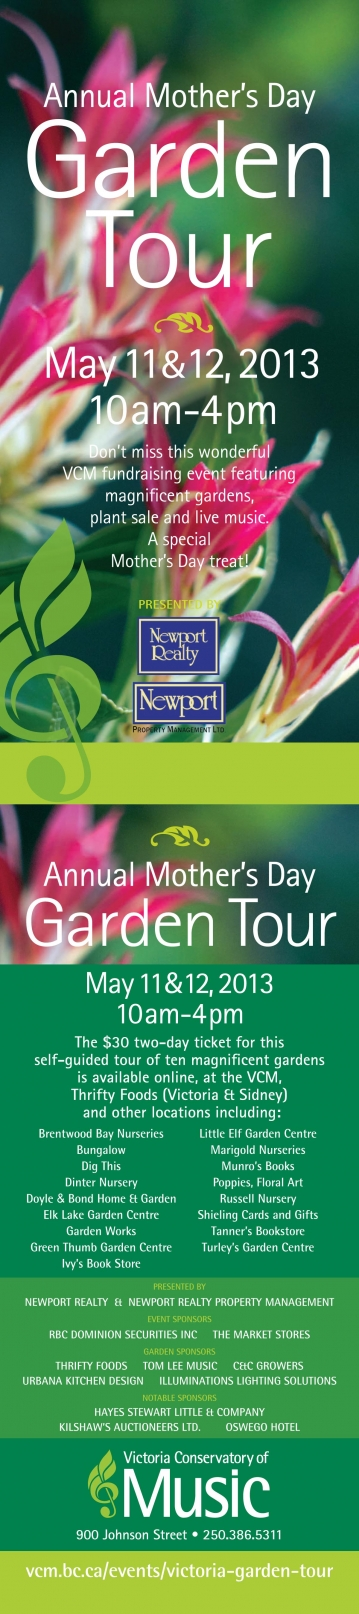 Mother's Day Garden Tour - May 11 & 12, Victoria, BC